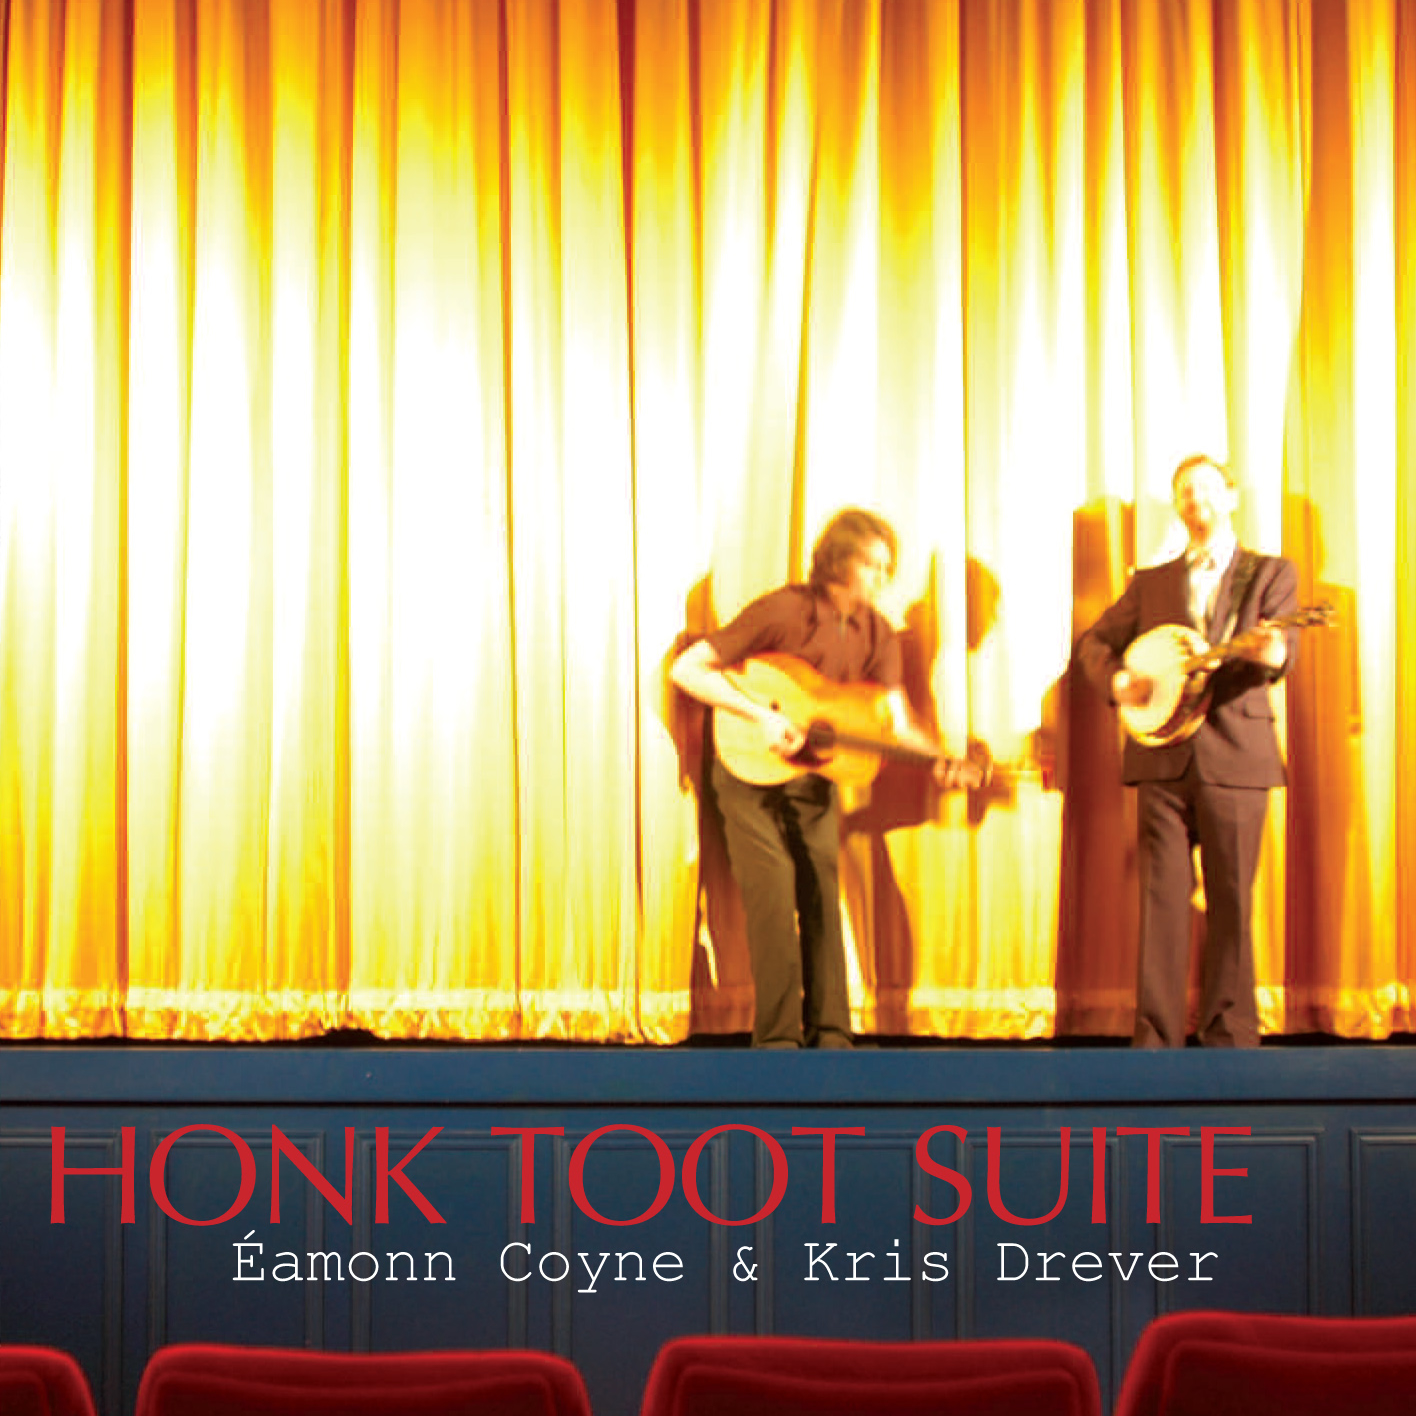 Honk Toot Suite front cover